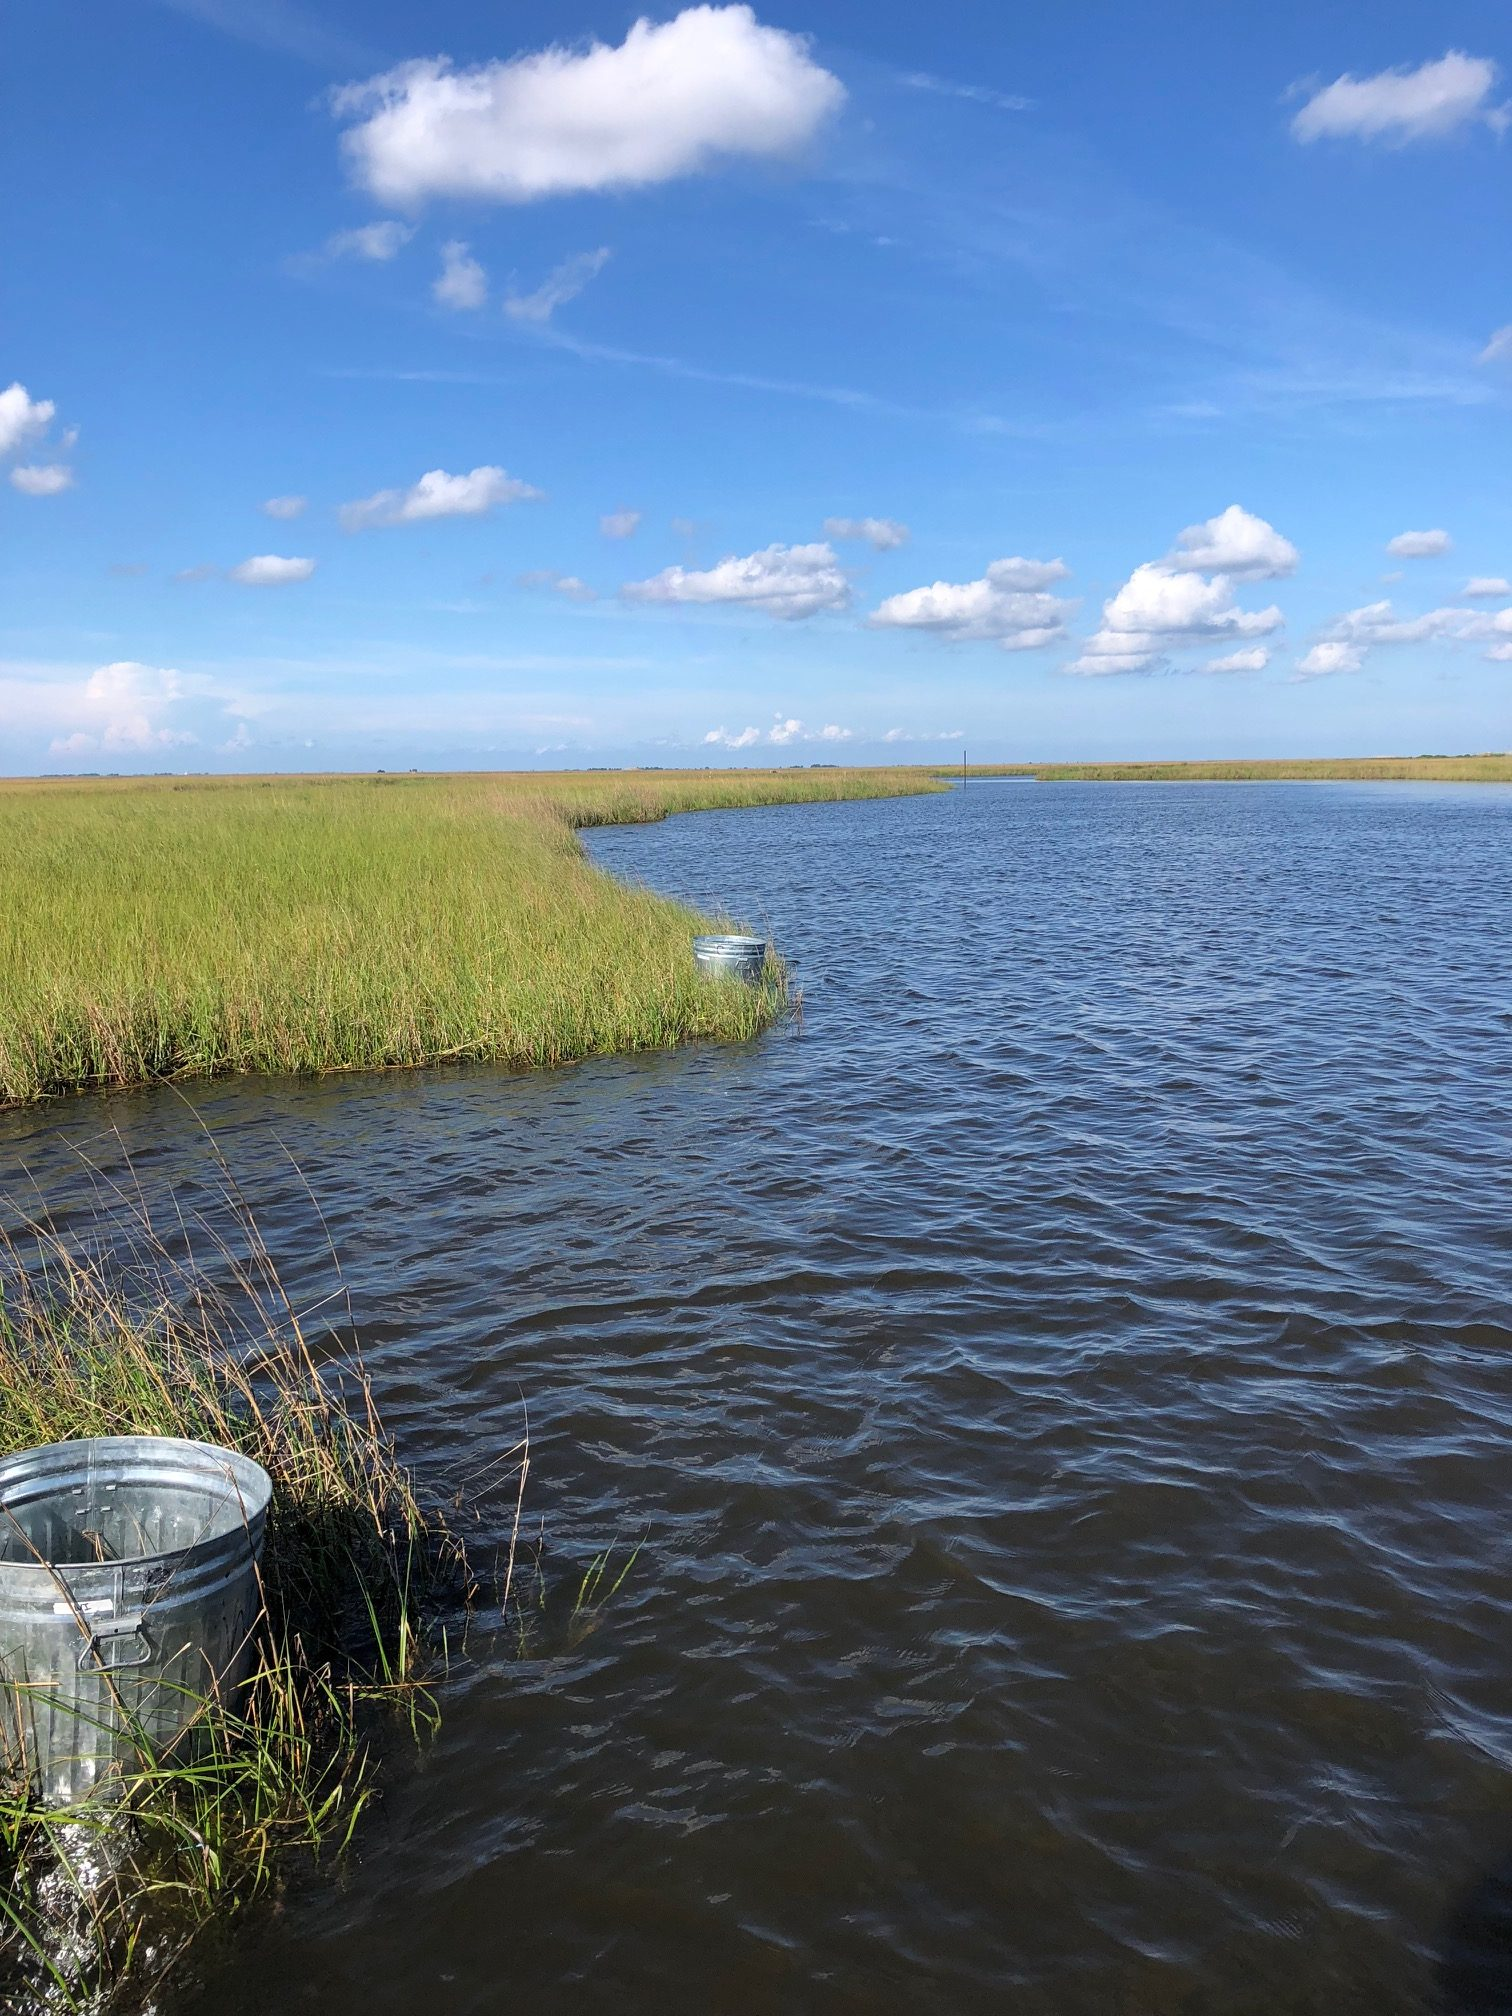 Cylinders encompass a known volume of marsh allowing animal density to be calculated. Photo credit: C. Martin